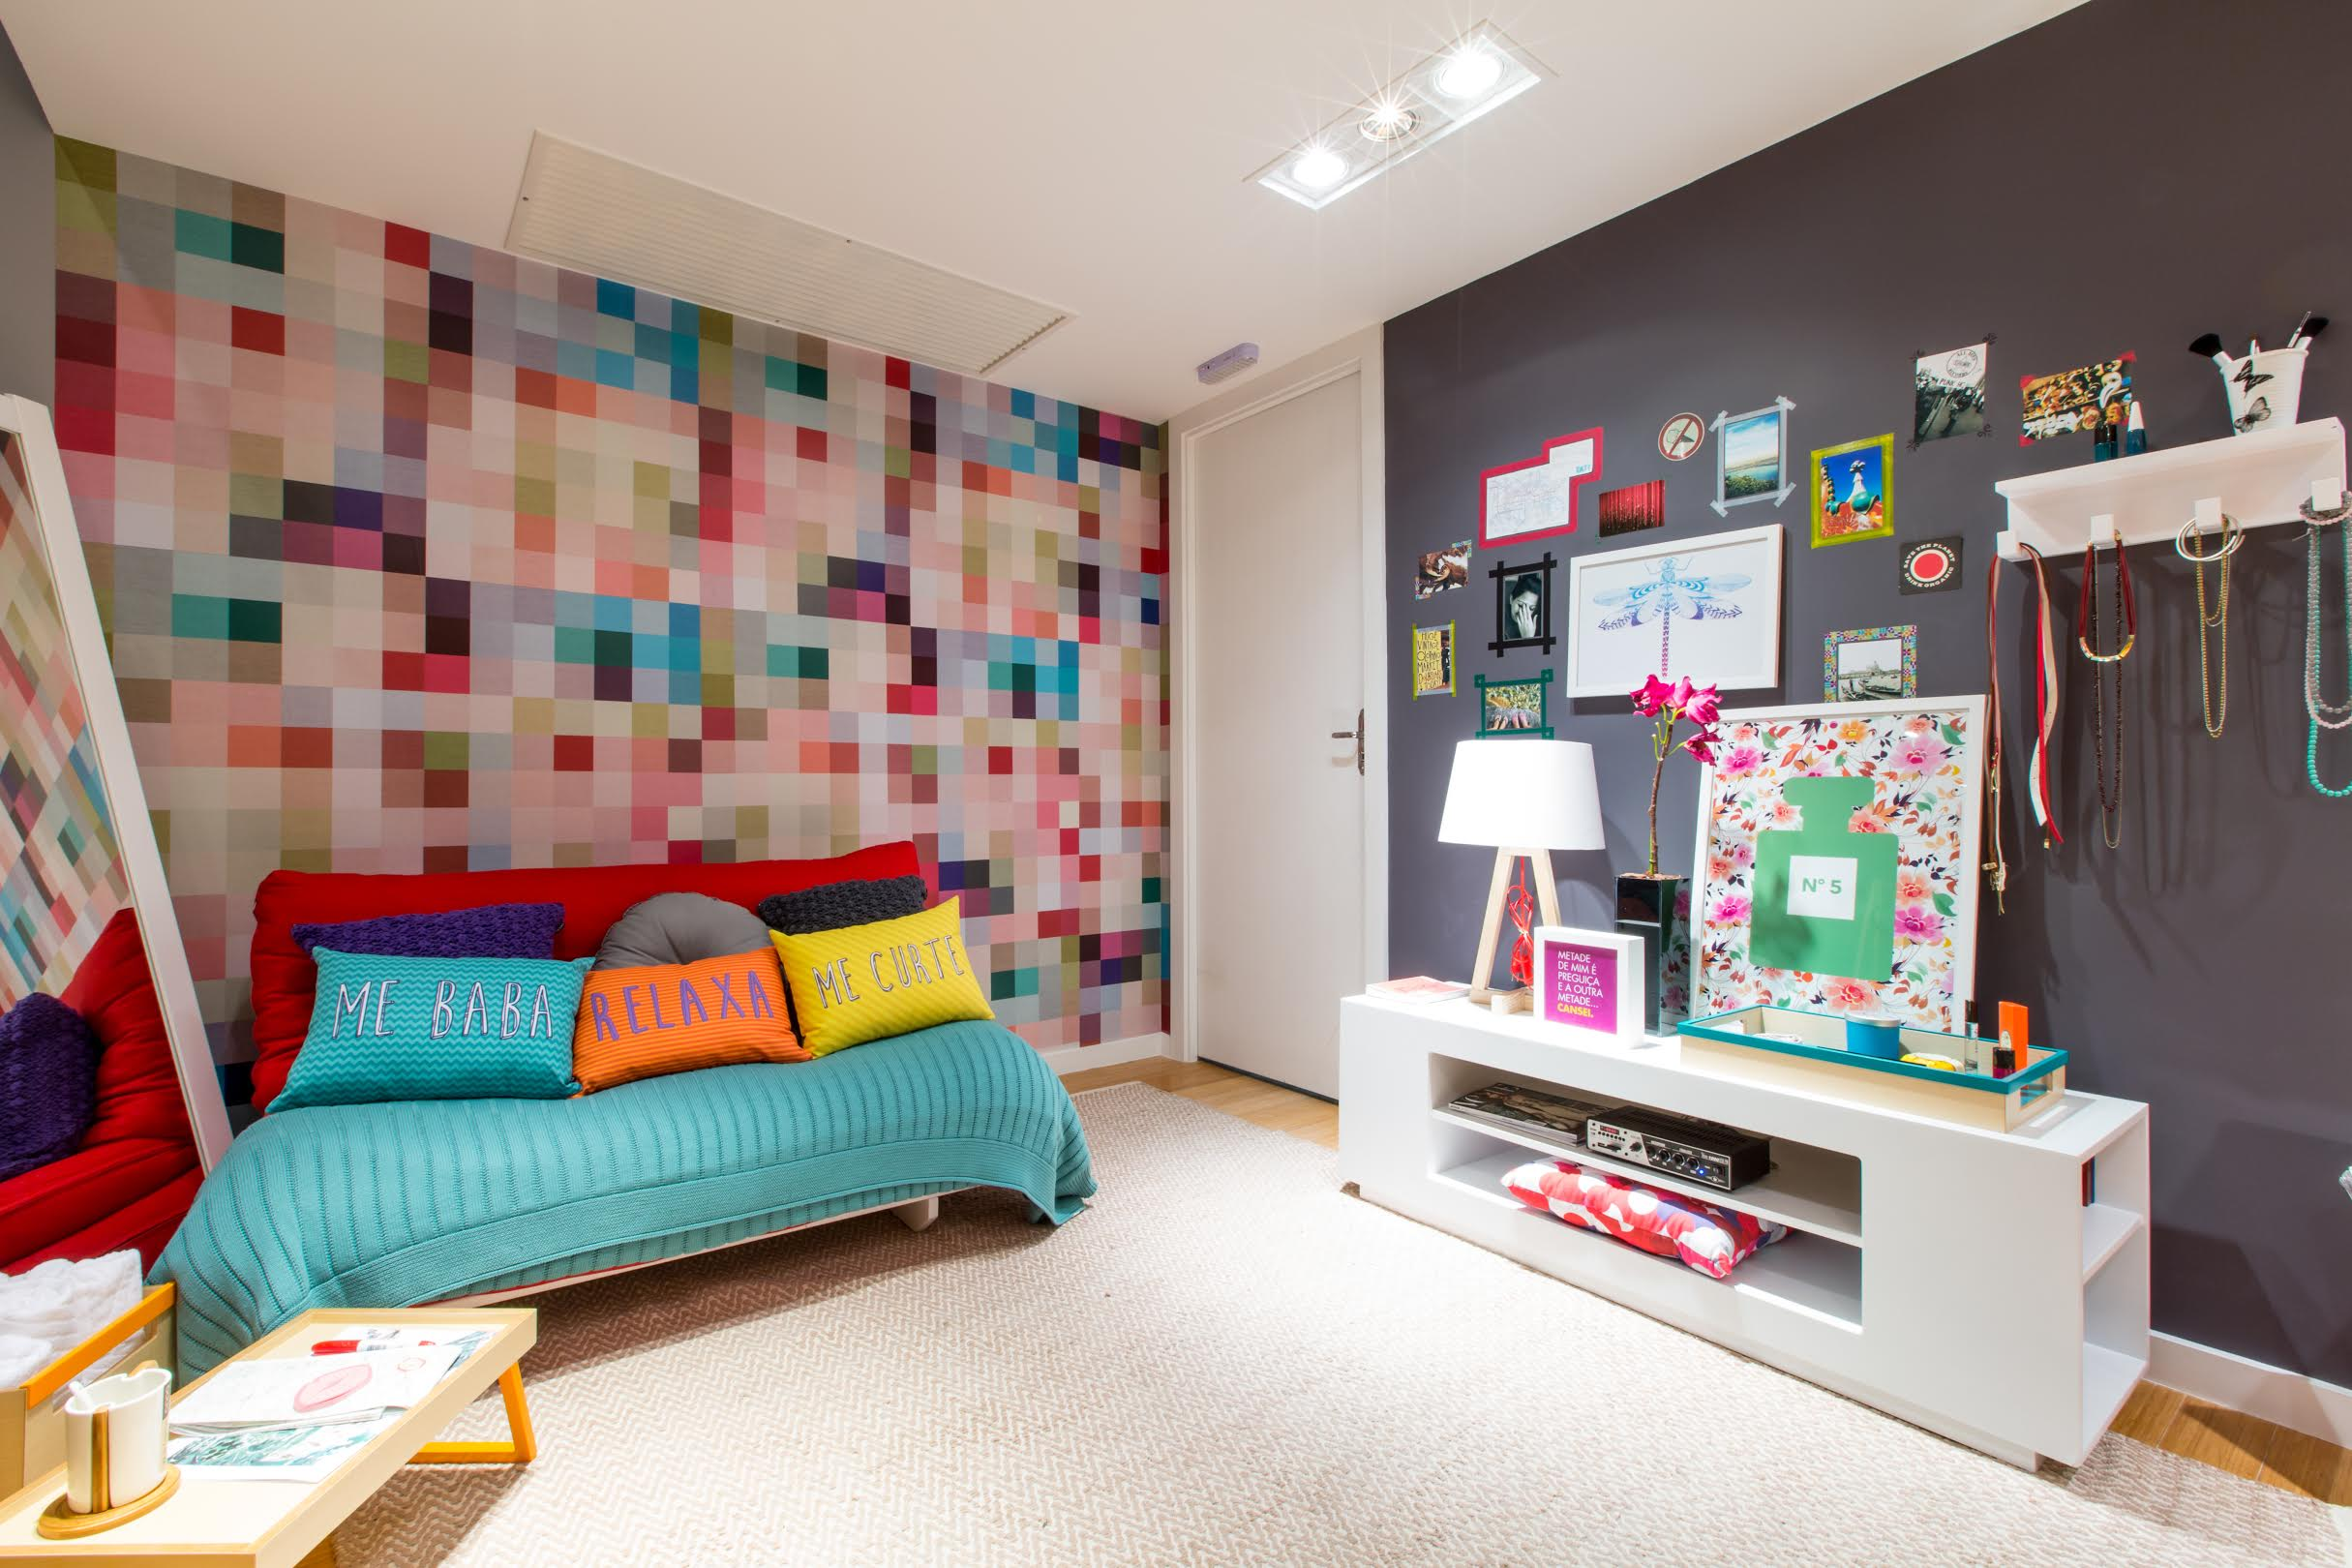 dormitorio con pared pixeleada